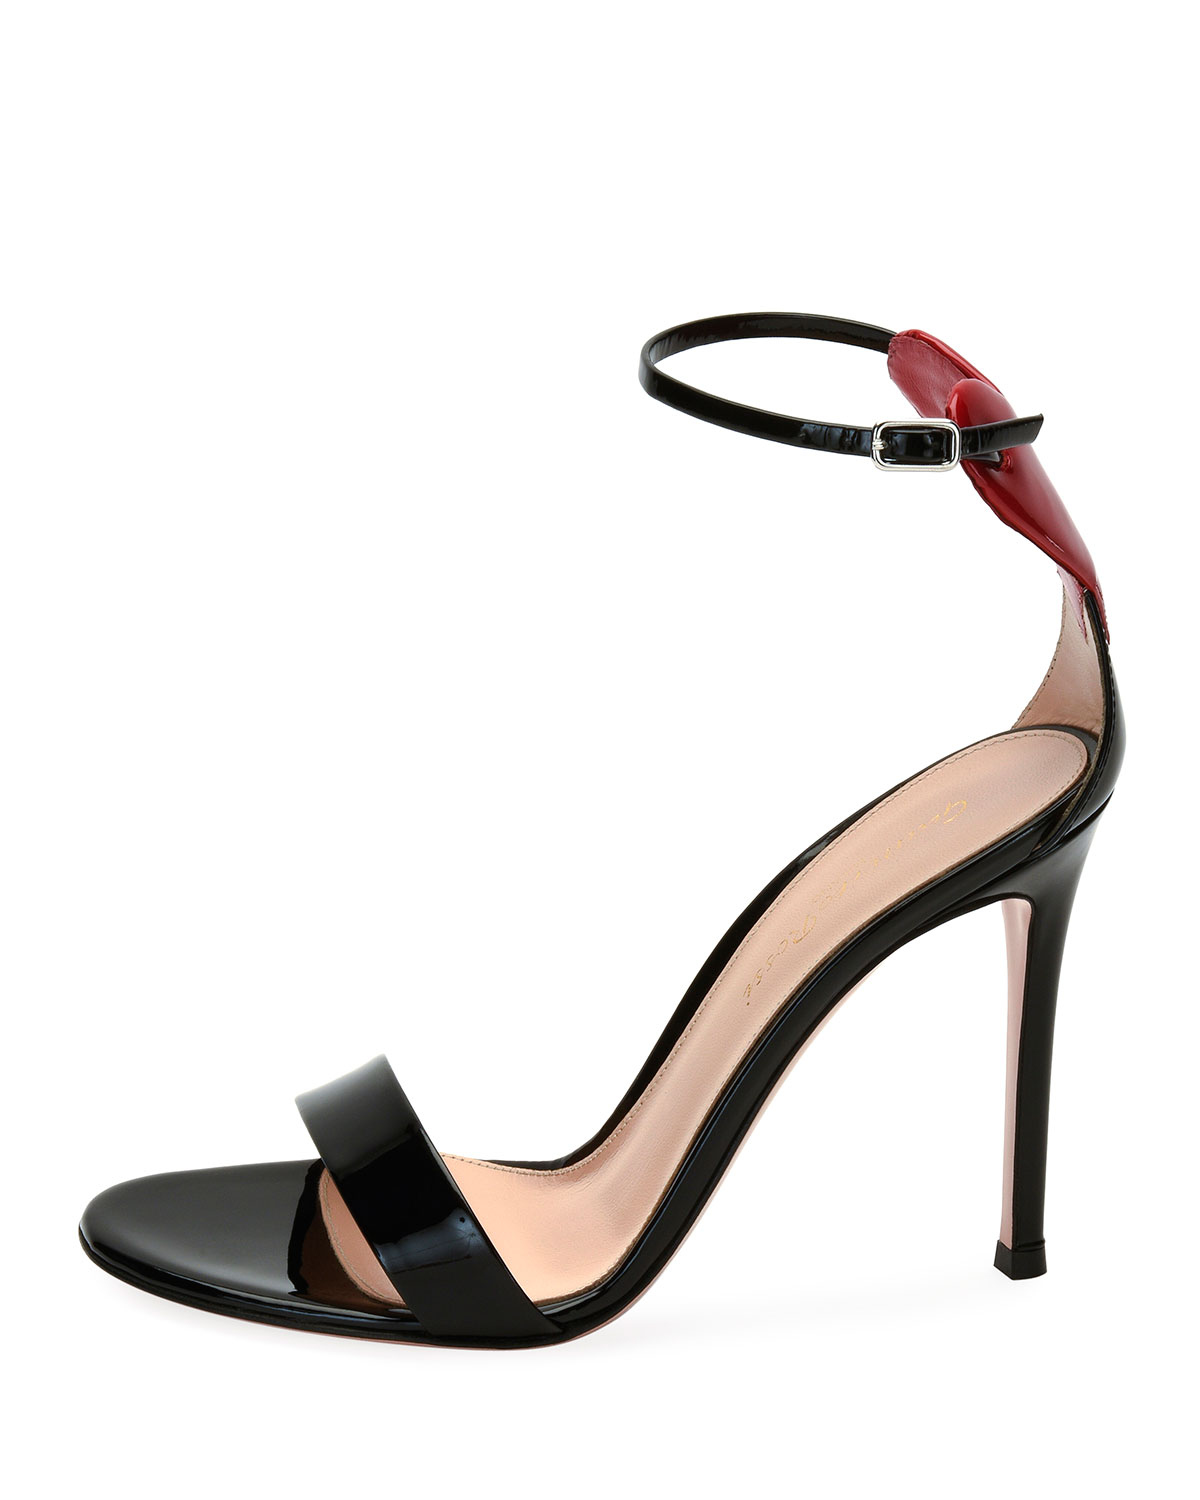 Gianvito Rossi Love Heart Patent 105mm Sandals, Black/Red